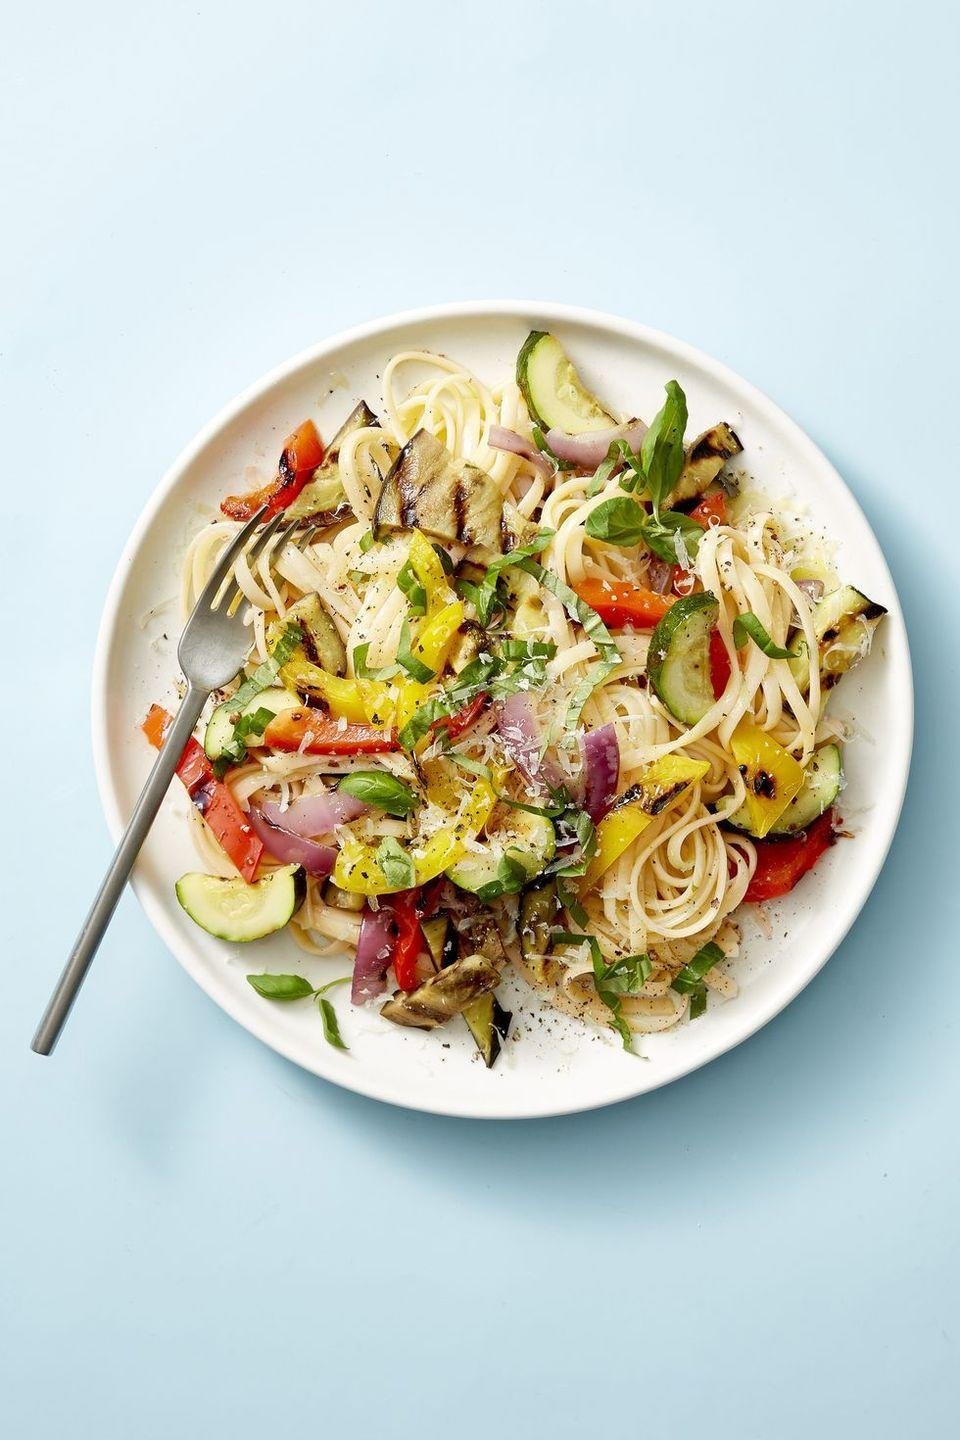 """<p>Why choose one summer veggie when you can have five?</p><p><em><a href=""""https://www.goodhousekeeping.com/food-recipes/easy/a21601536/grilled-ratatouille-linguine-recipe/"""" rel=""""nofollow noopener"""" target=""""_blank"""" data-ylk=""""slk:Get the recipe for Grilled Ratatouille Linguine »"""" class=""""link rapid-noclick-resp"""">Get the recipe for Grilled Ratatouille Linguine »</a></em></p>"""